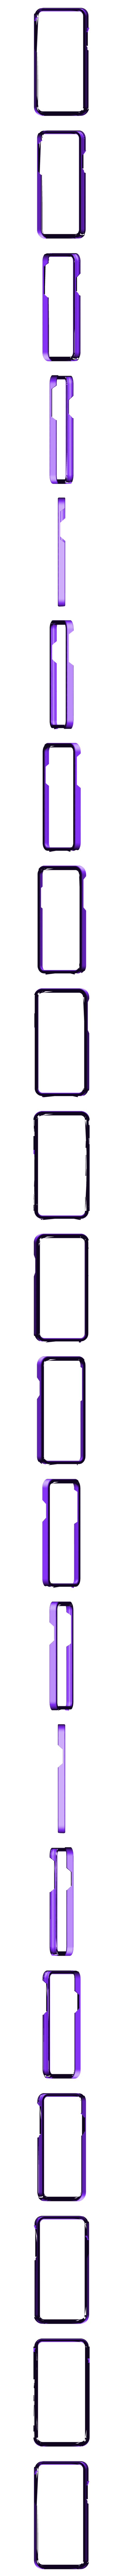 iphonex-bump-pla-cutouts.stl Download free STL file iPhone X case • 3D print object, Adafruit